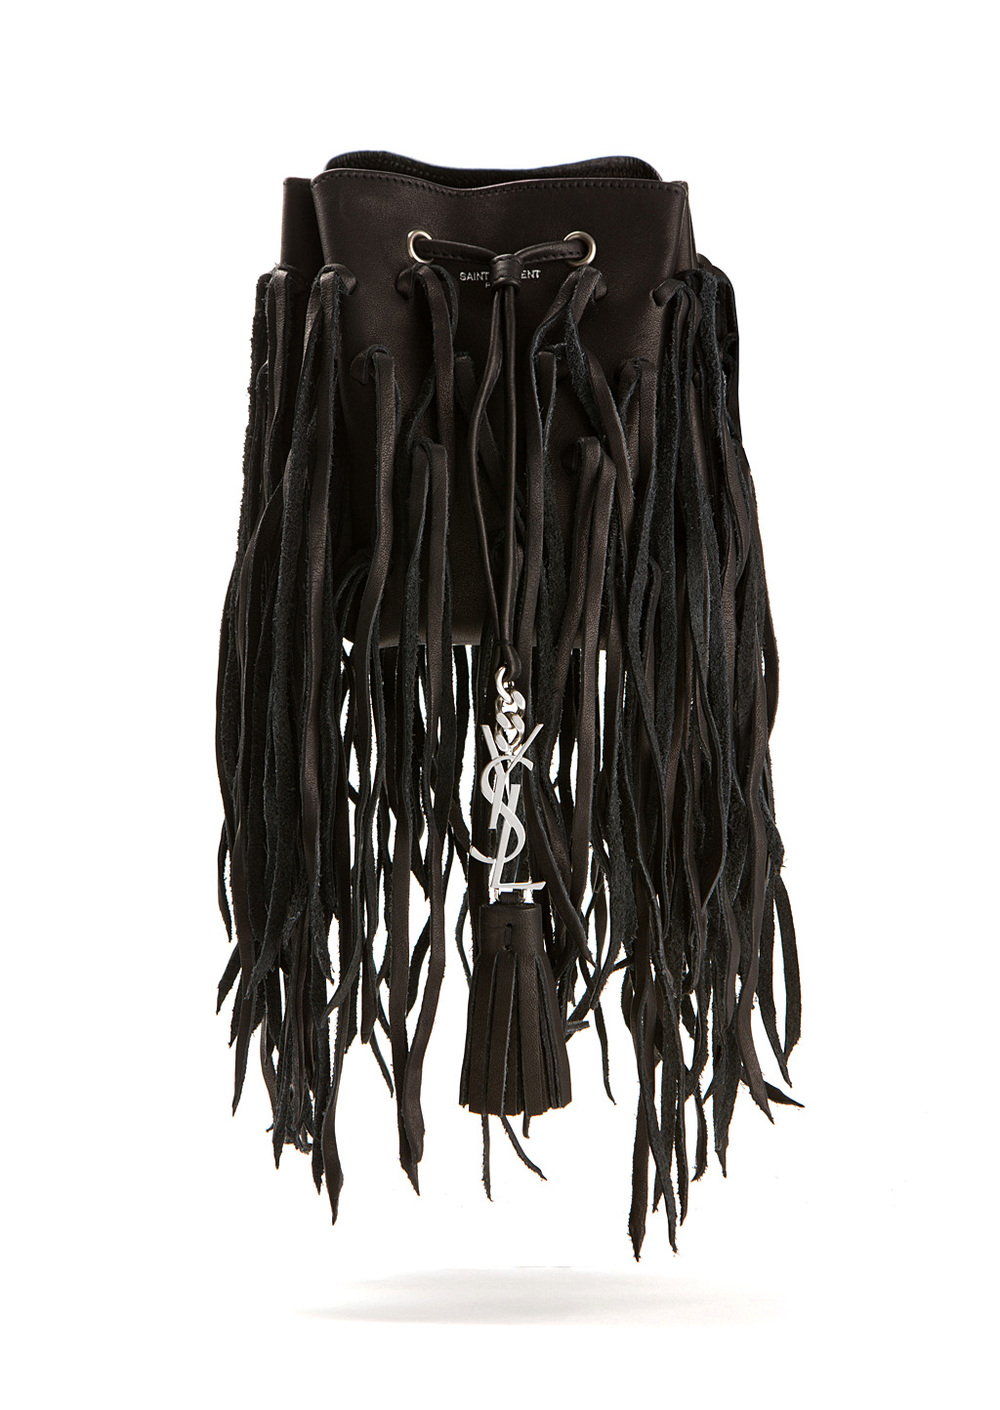 Fringe bucket bag, YSL